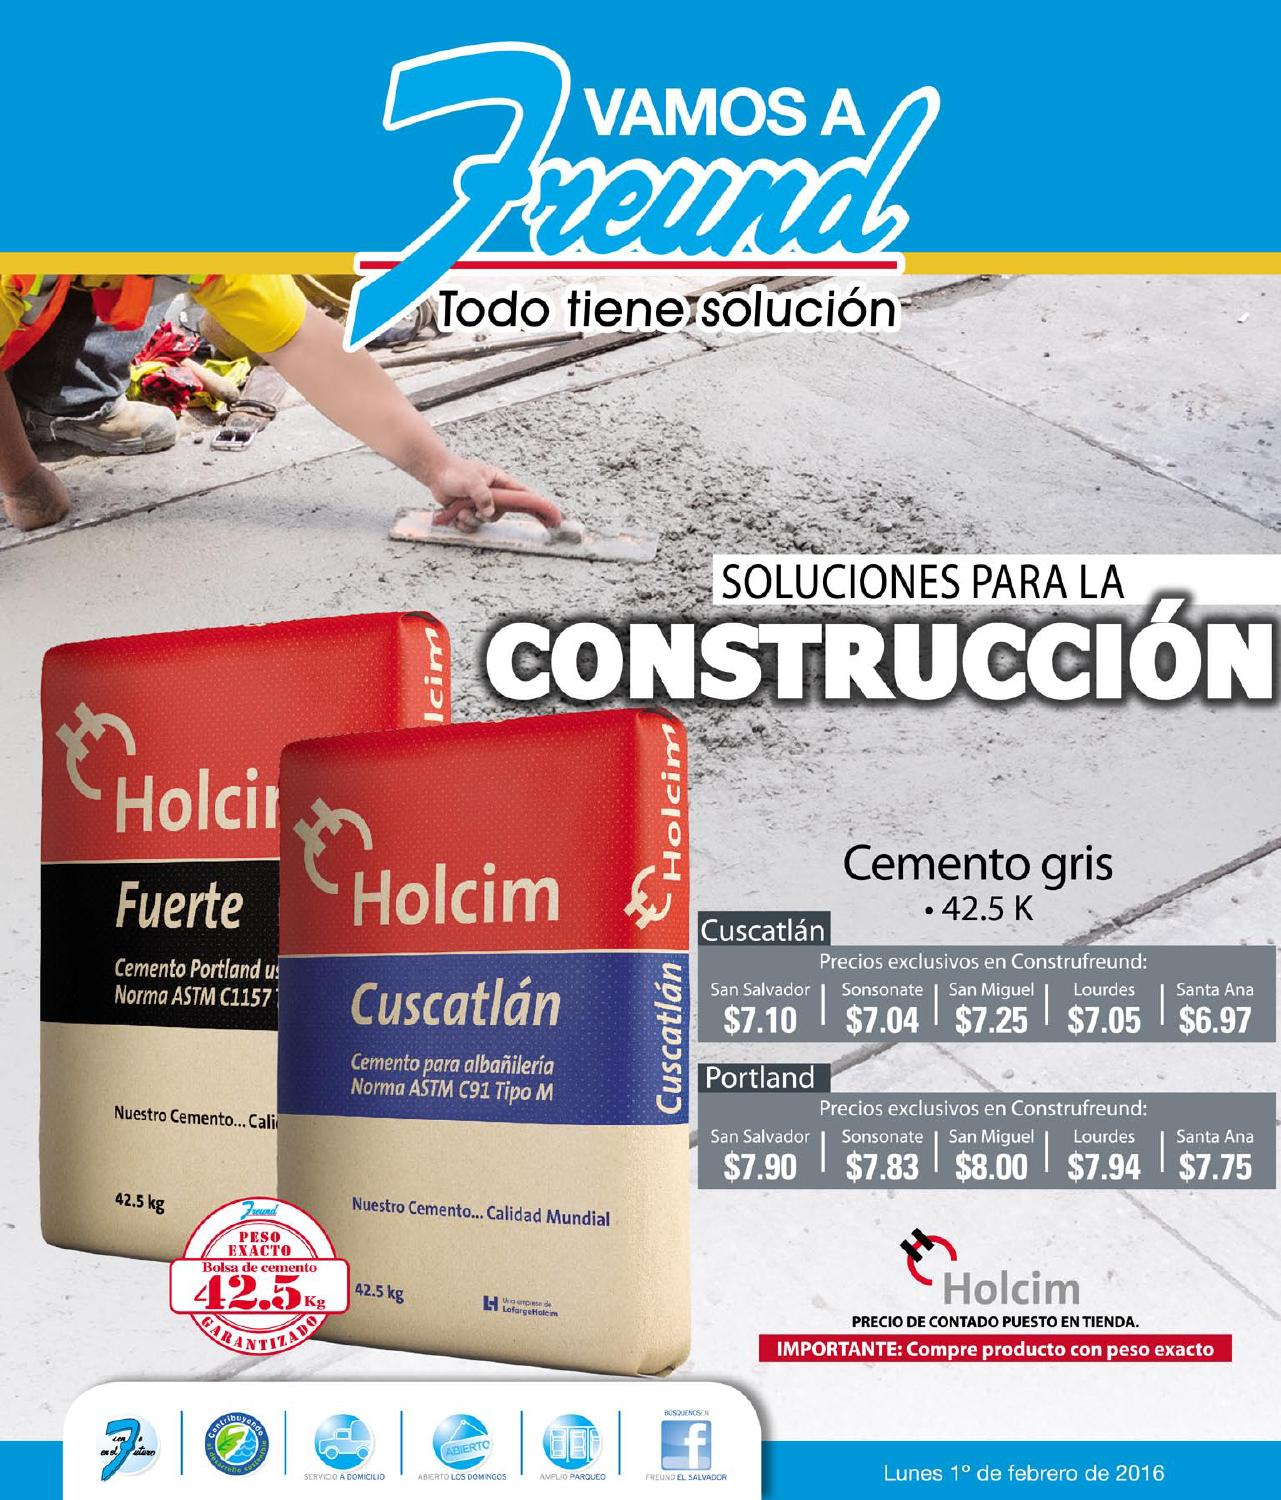 FREUND Catalogo de promociones en productos para la construccion